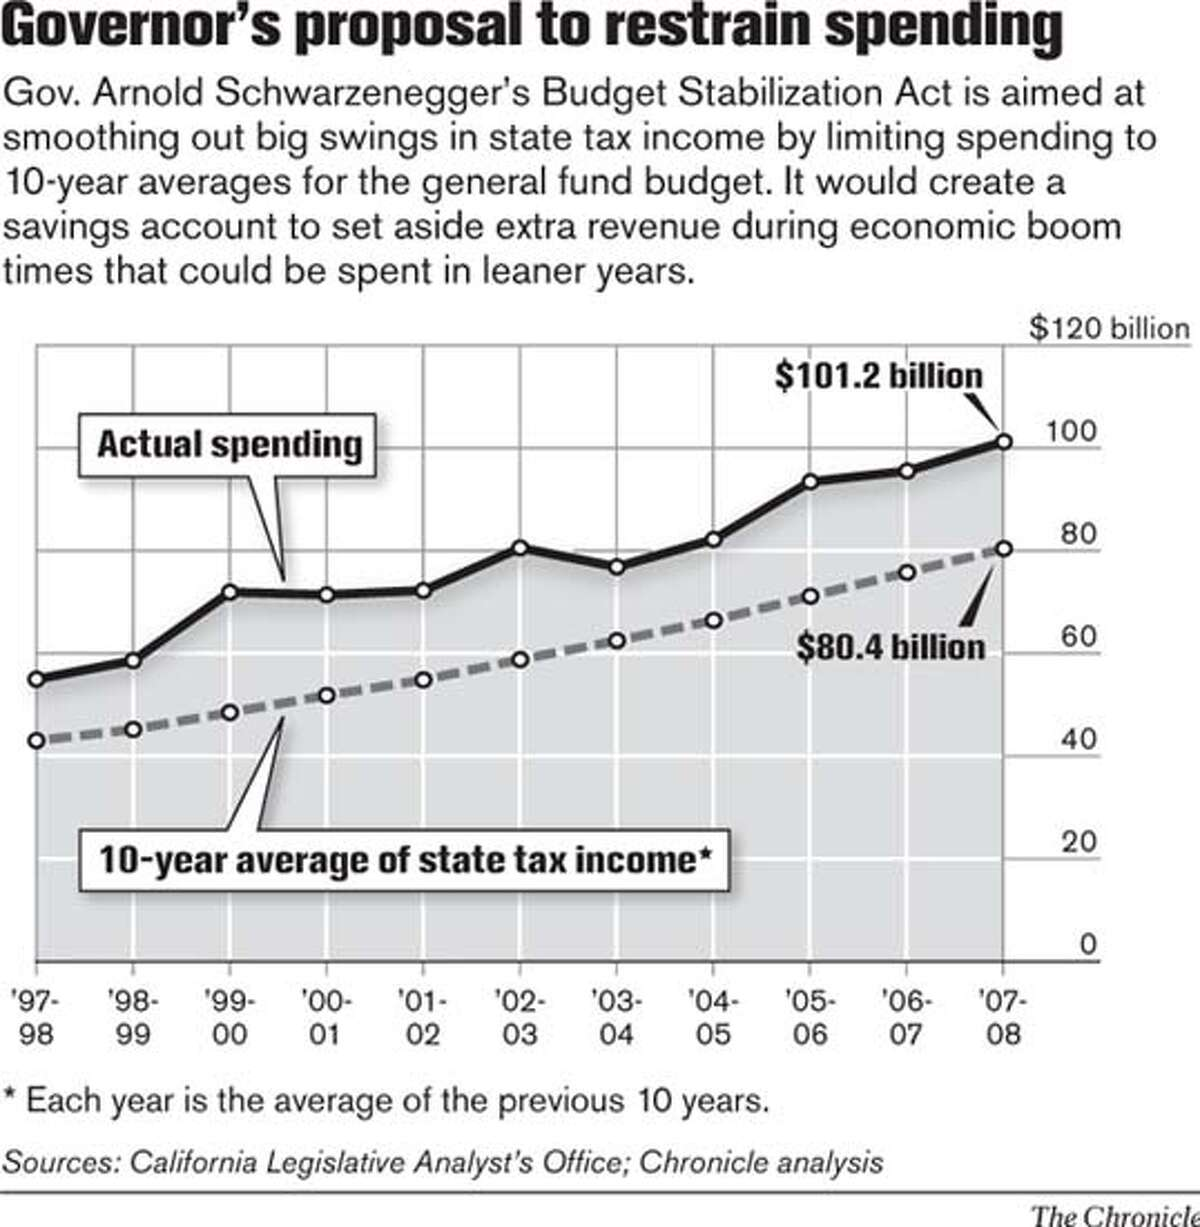 Governor's Proposal to Restrain Spending. Chronicle Graphic